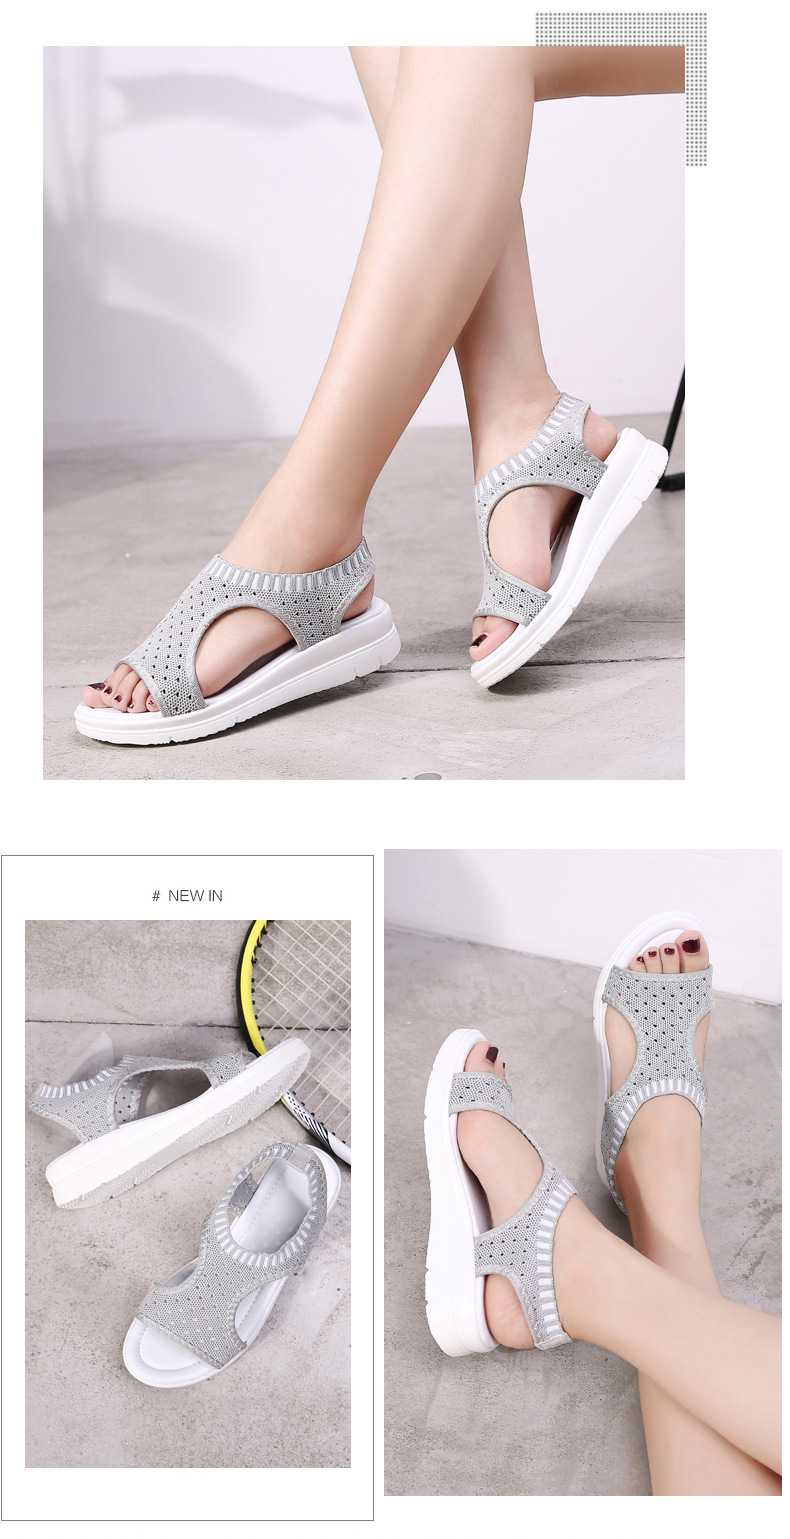 HTB1iSLiiDqWBKNjSZFxq6ApLpXa0 MLANXEUE Fashion Women Sandals For 2019 Breathable Comfort Shopping Ladies Walking Shoes Summer Platform Black Sandal Shoes